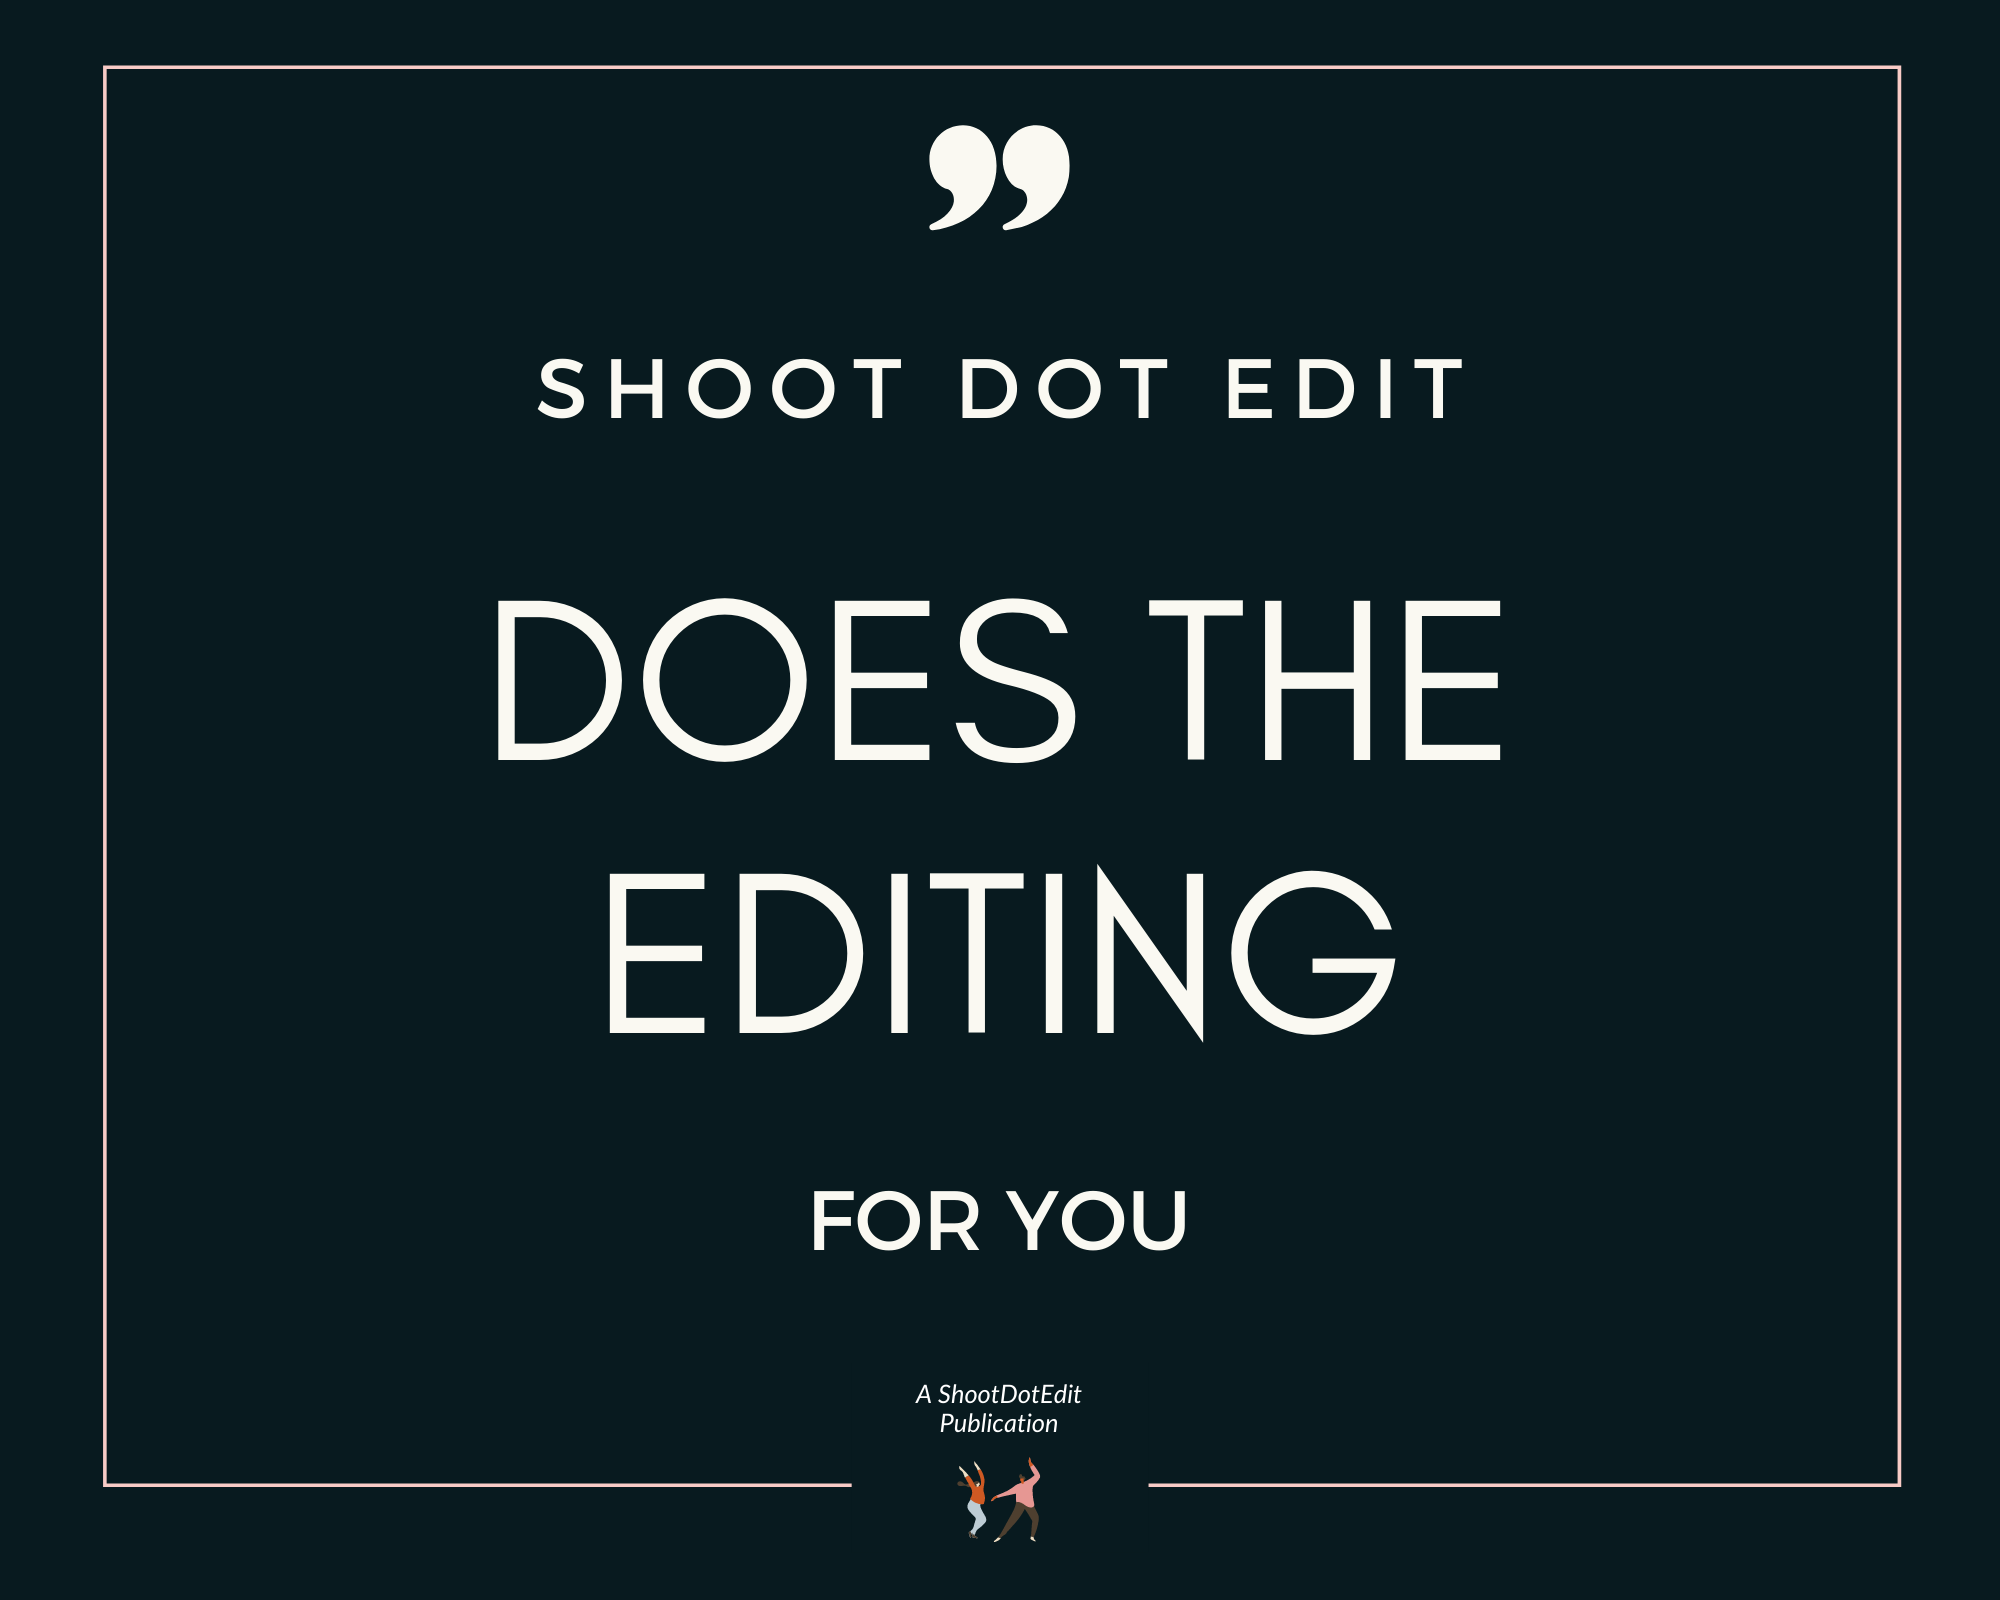 Infographic stating Shoot Dot Edit does the editing for you